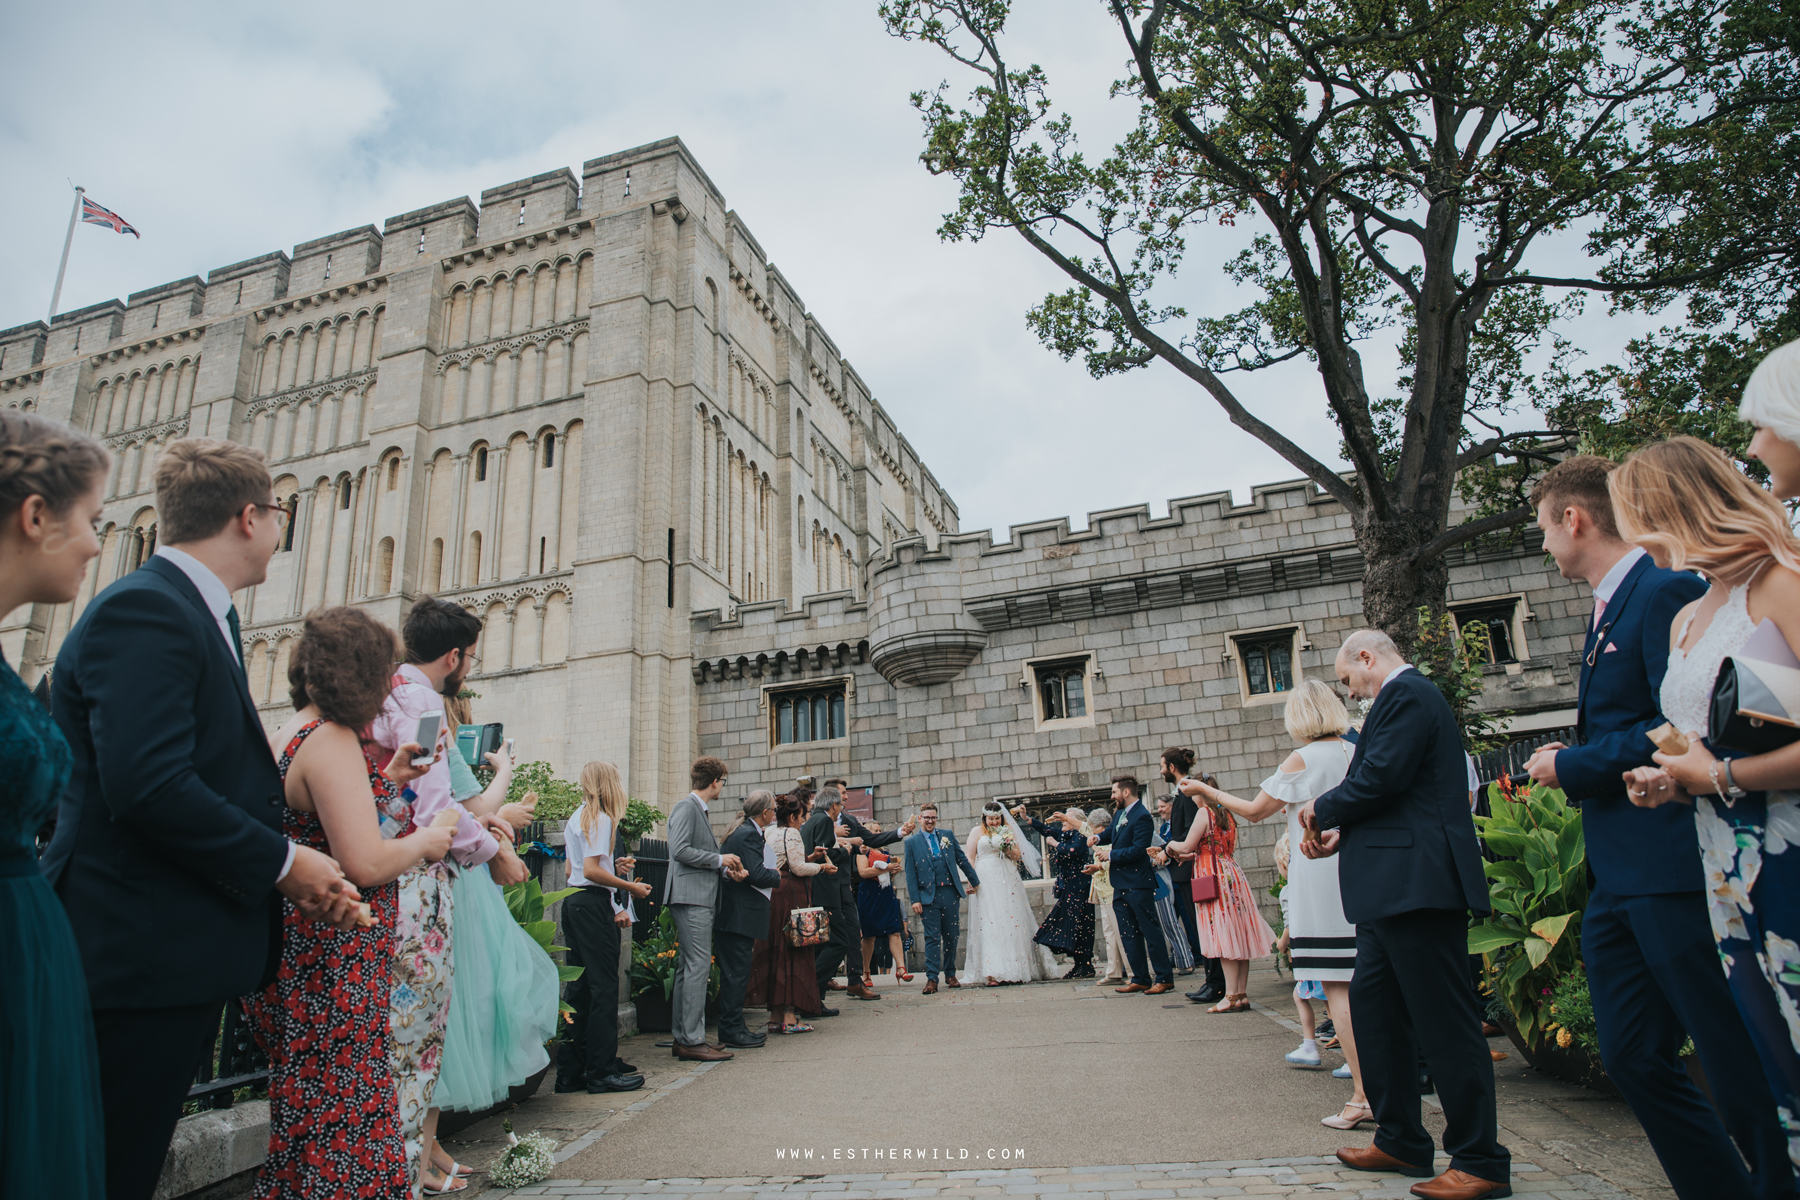 Norwich_Castle_Arcade_Grosvenor_Chip_Birdcage_Cathedral_Cloisters_Refectory_Wedding_Photography_Esther_Wild_Photographer_Norfolk_Kings_Lynn_3R8A1170.jpg